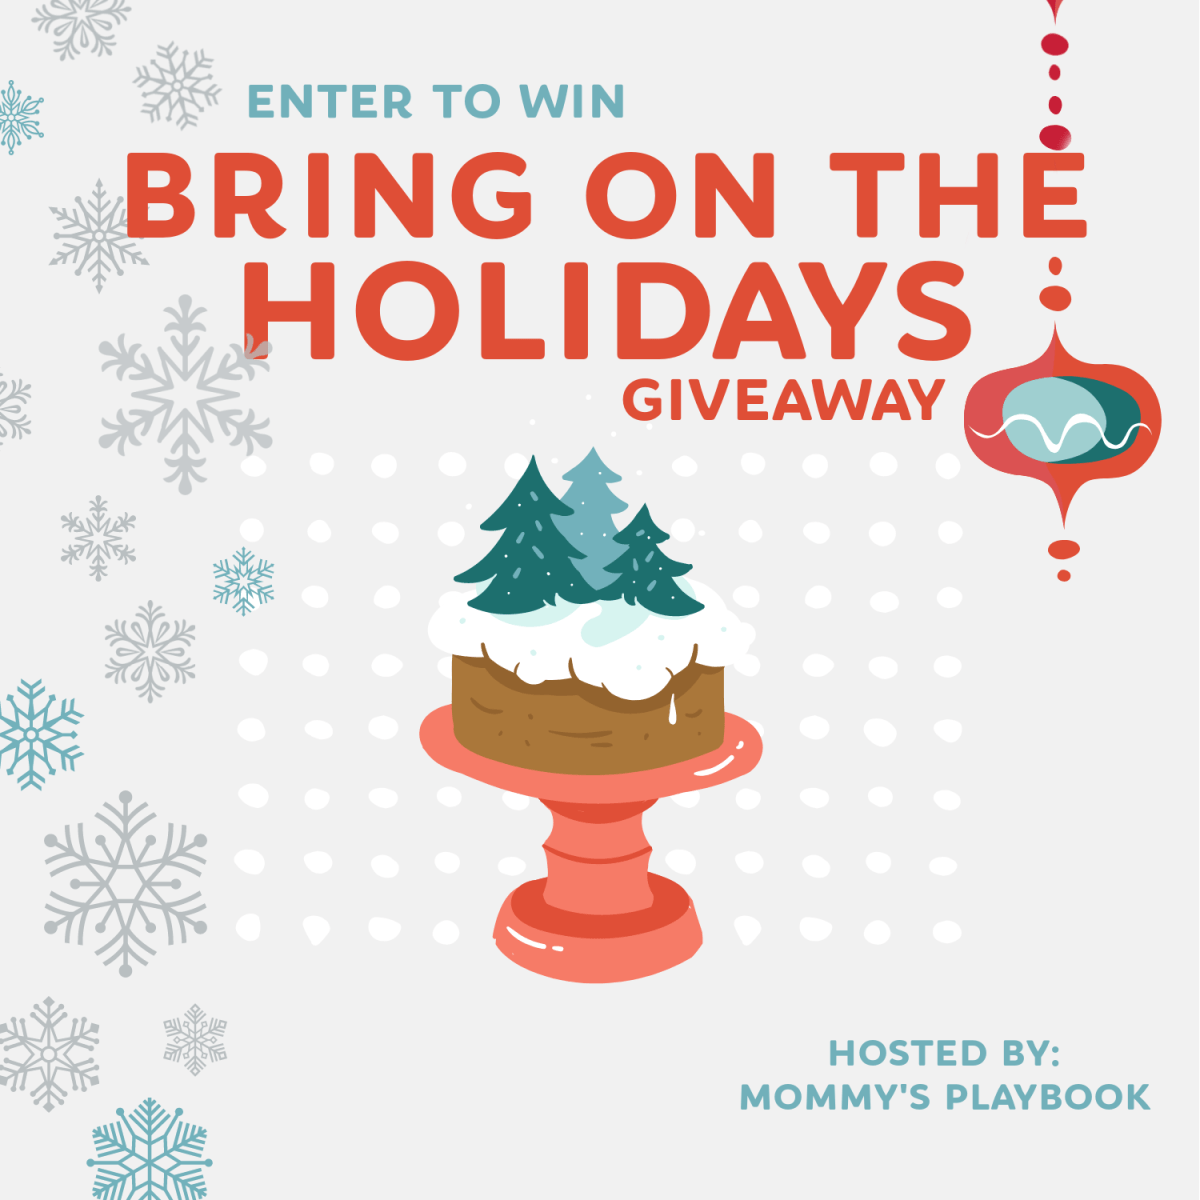 Bring on the Holiday Prizes Grand Prize #Giveaway (APV $415) Ends 11/30